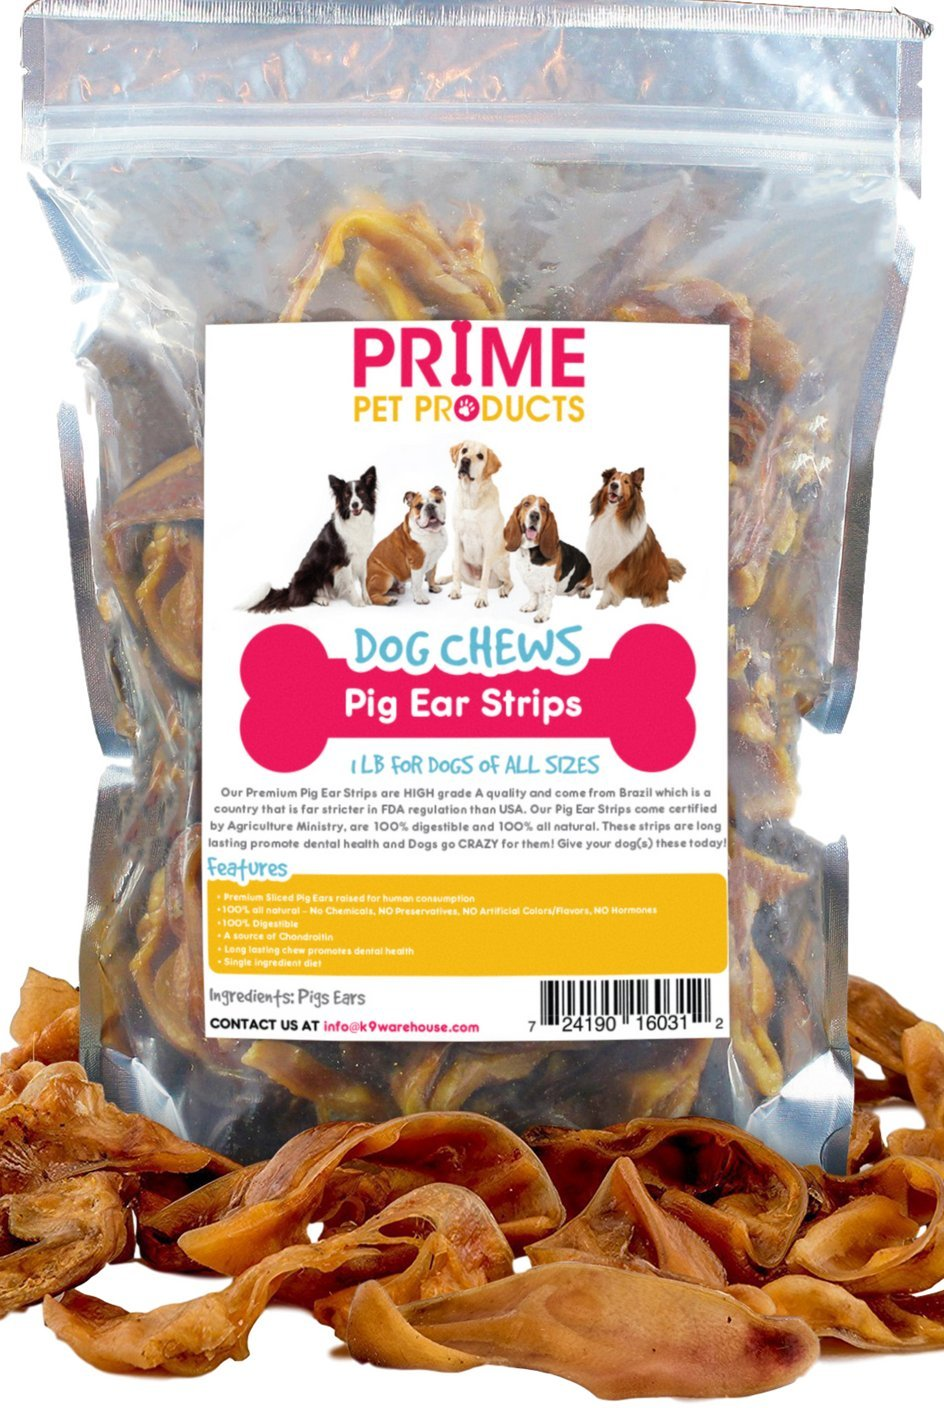 K9KONNECTION Pig Ears Strips for Dogs - 1 lb Bag (20+Strips) of All Natural Healthy Dog Treat, Made of Pure Pork Pig Ears - Better Alternative to Rawhide Dog Chews for Dogs